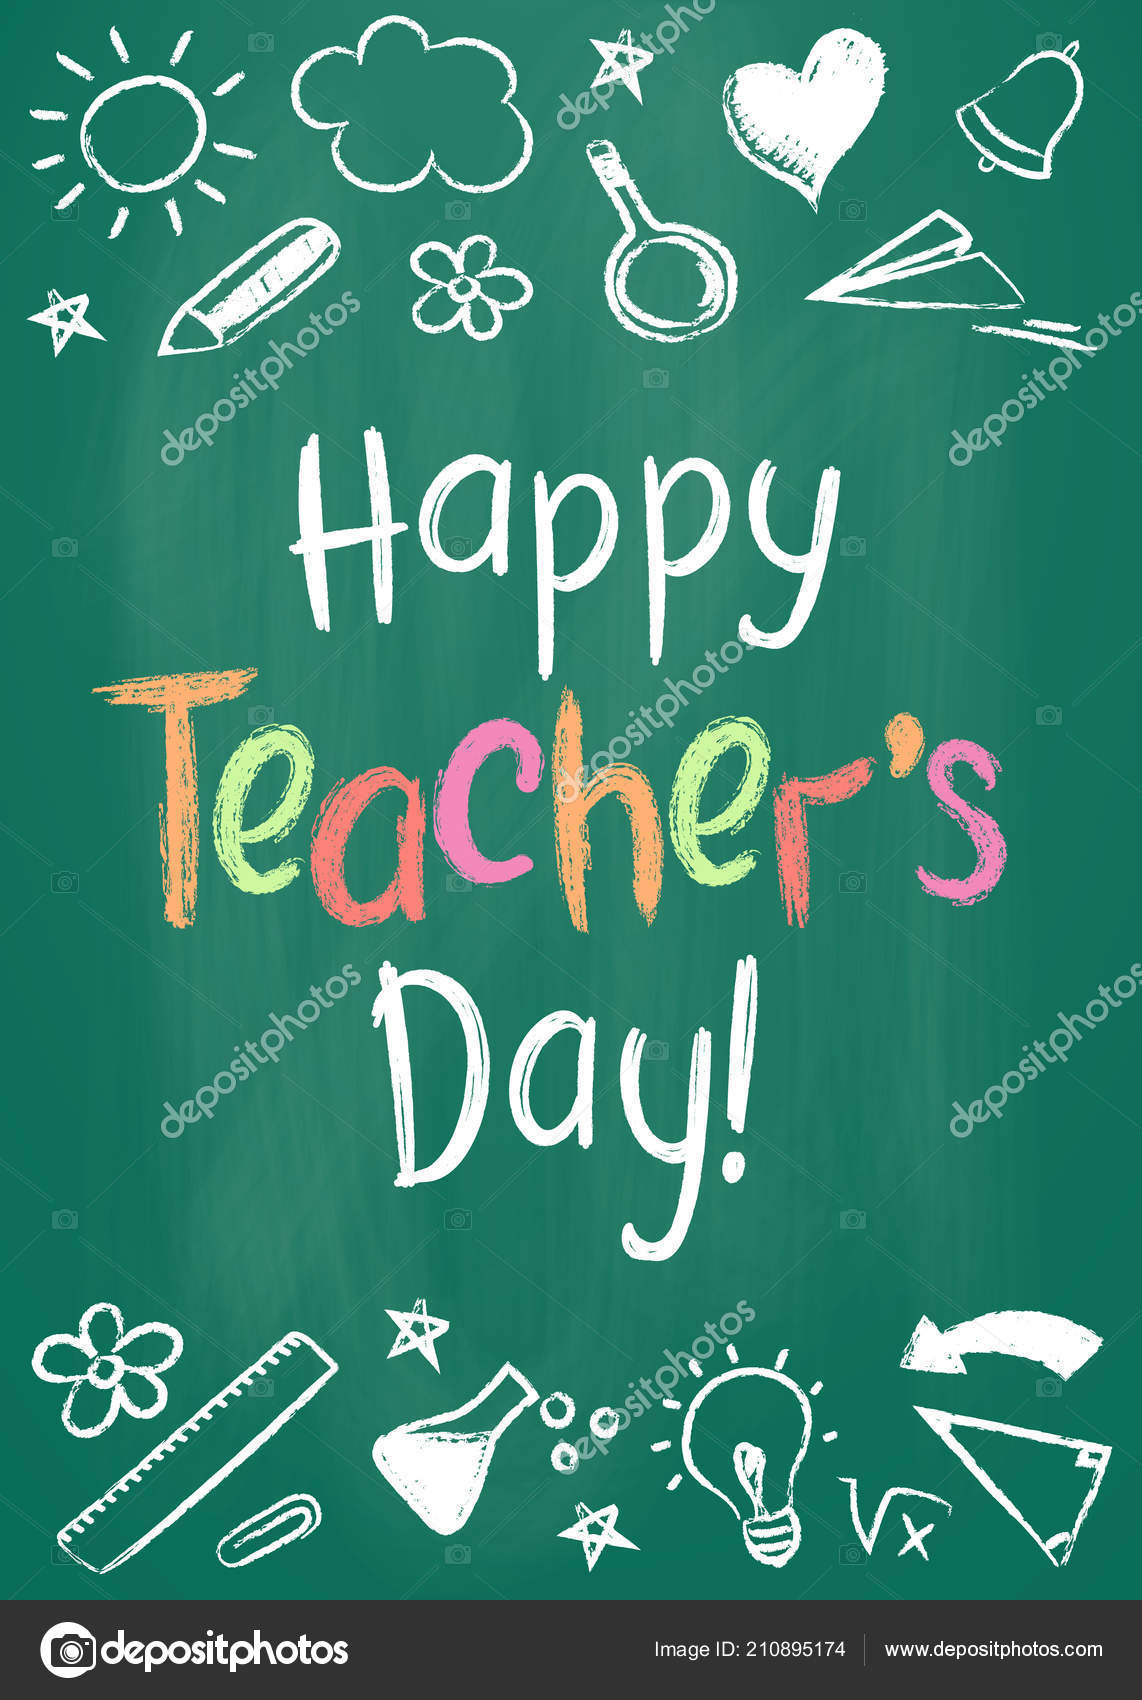 Happy teachers day greeting card or placard on green chalk board in happy teachers day greeting card or placard on green chalk board in sketchy style with handdrawn m4hsunfo